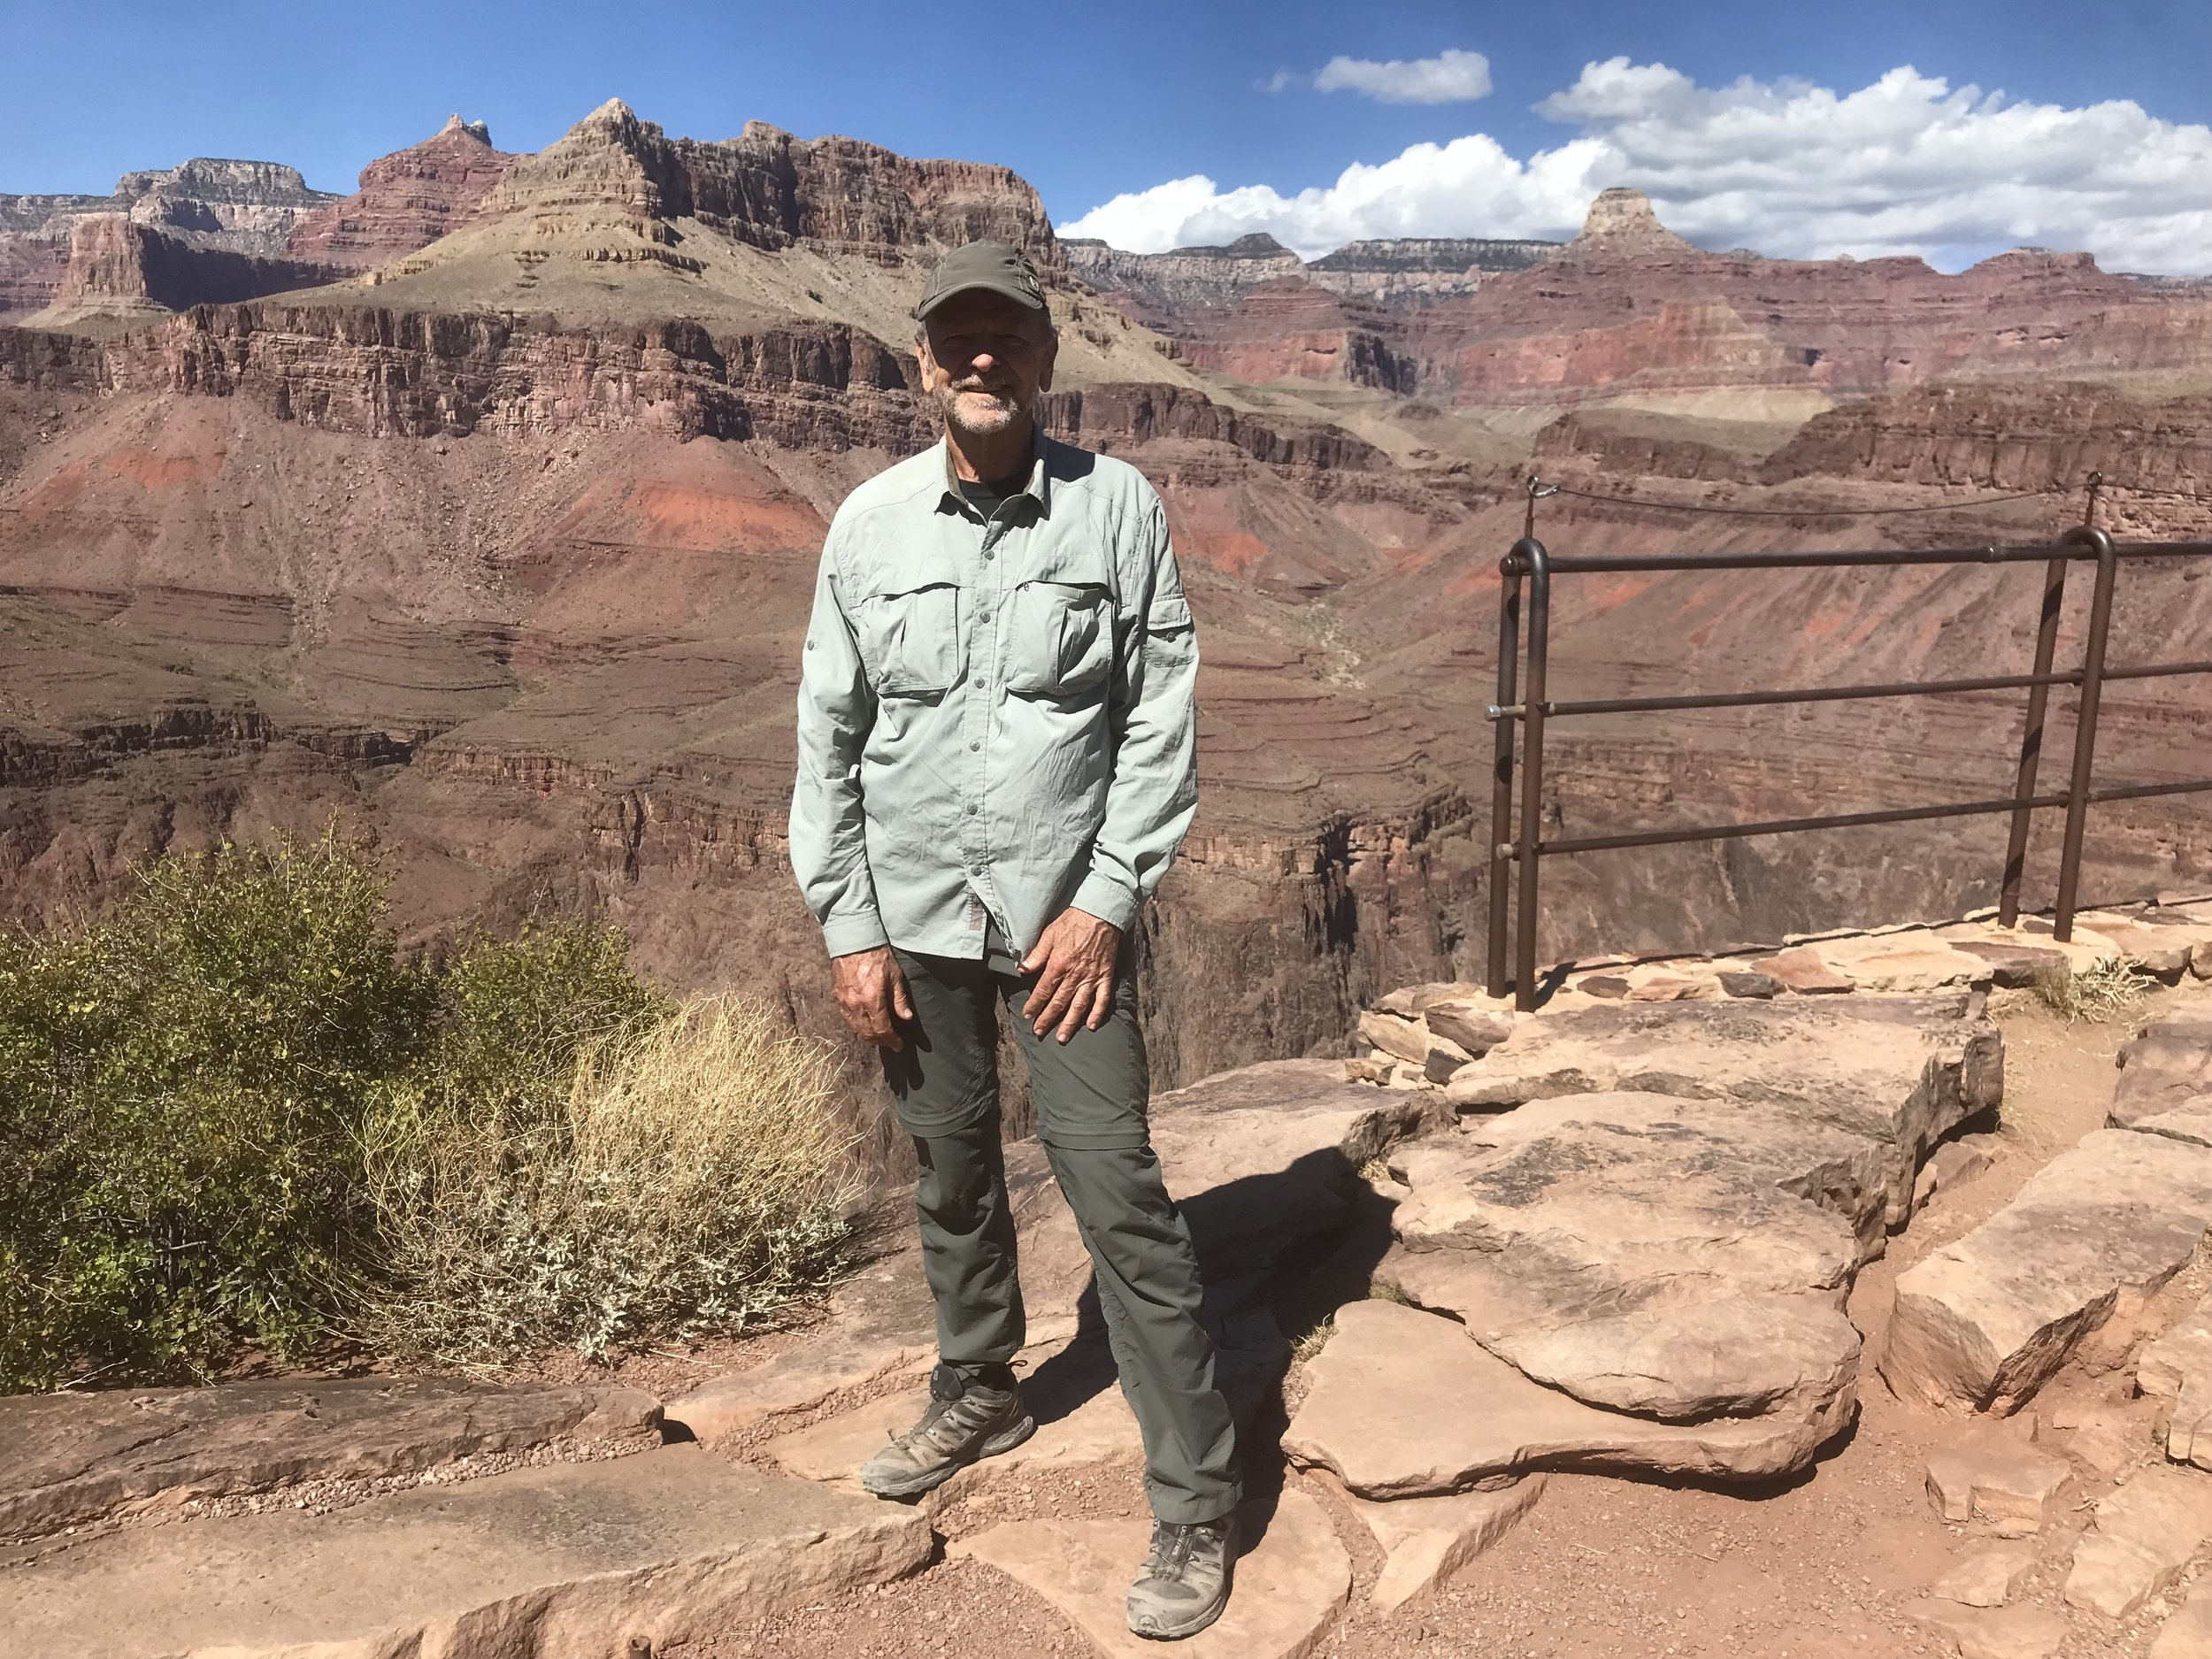 Backpacking in the Grand Canyon with Franco and friends from the Conservancy. Photo taken at Plateau Point.